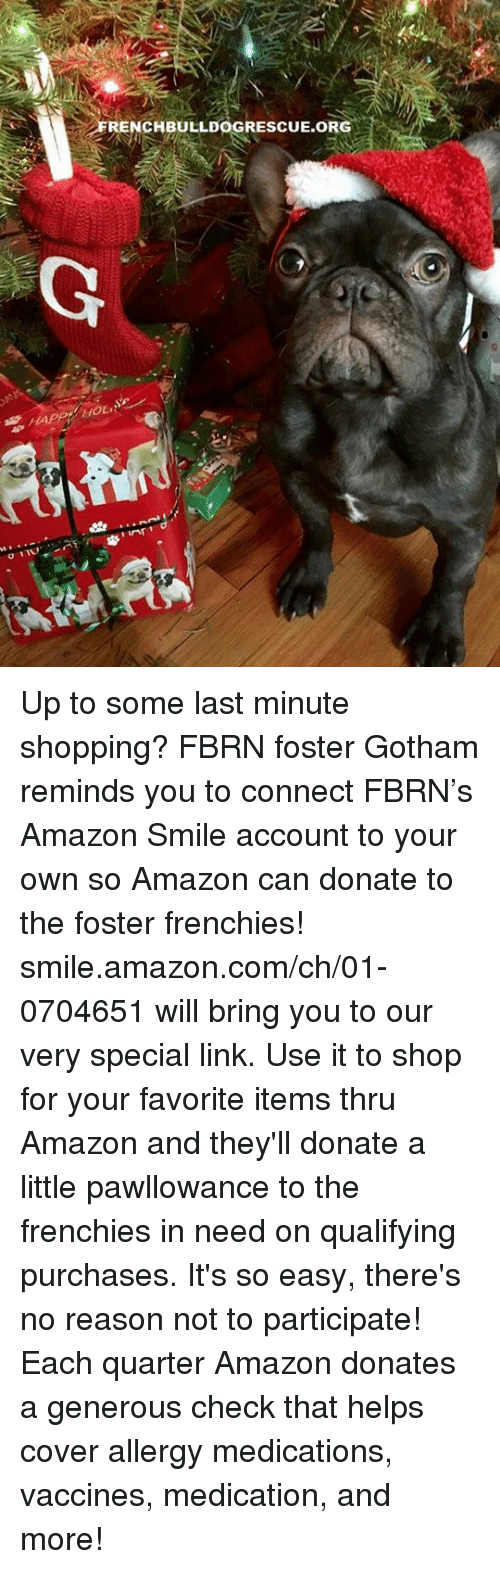 frenchy: ARENCBULLDOGRESCUE.ORG  G  HAPPerfoLAe.  011v,シ湃 r g/ inf!  H Up to some last minute shopping? FBRN foster Gotham reminds you to connect FBRN's Amazon Smile account to your own so Amazon can donate to the foster frenchies!   smile.amazon.com/ch/01-0704651 will bring you to our very special link. Use it to shop for your favorite items thru Amazon and they'll donate a little pawllowance to the frenchies in need on qualifying purchases. It's so easy, there's no reason not to participate! Each quarter Amazon donates a generous check that helps cover allergy medications, vaccines, medication, and more!